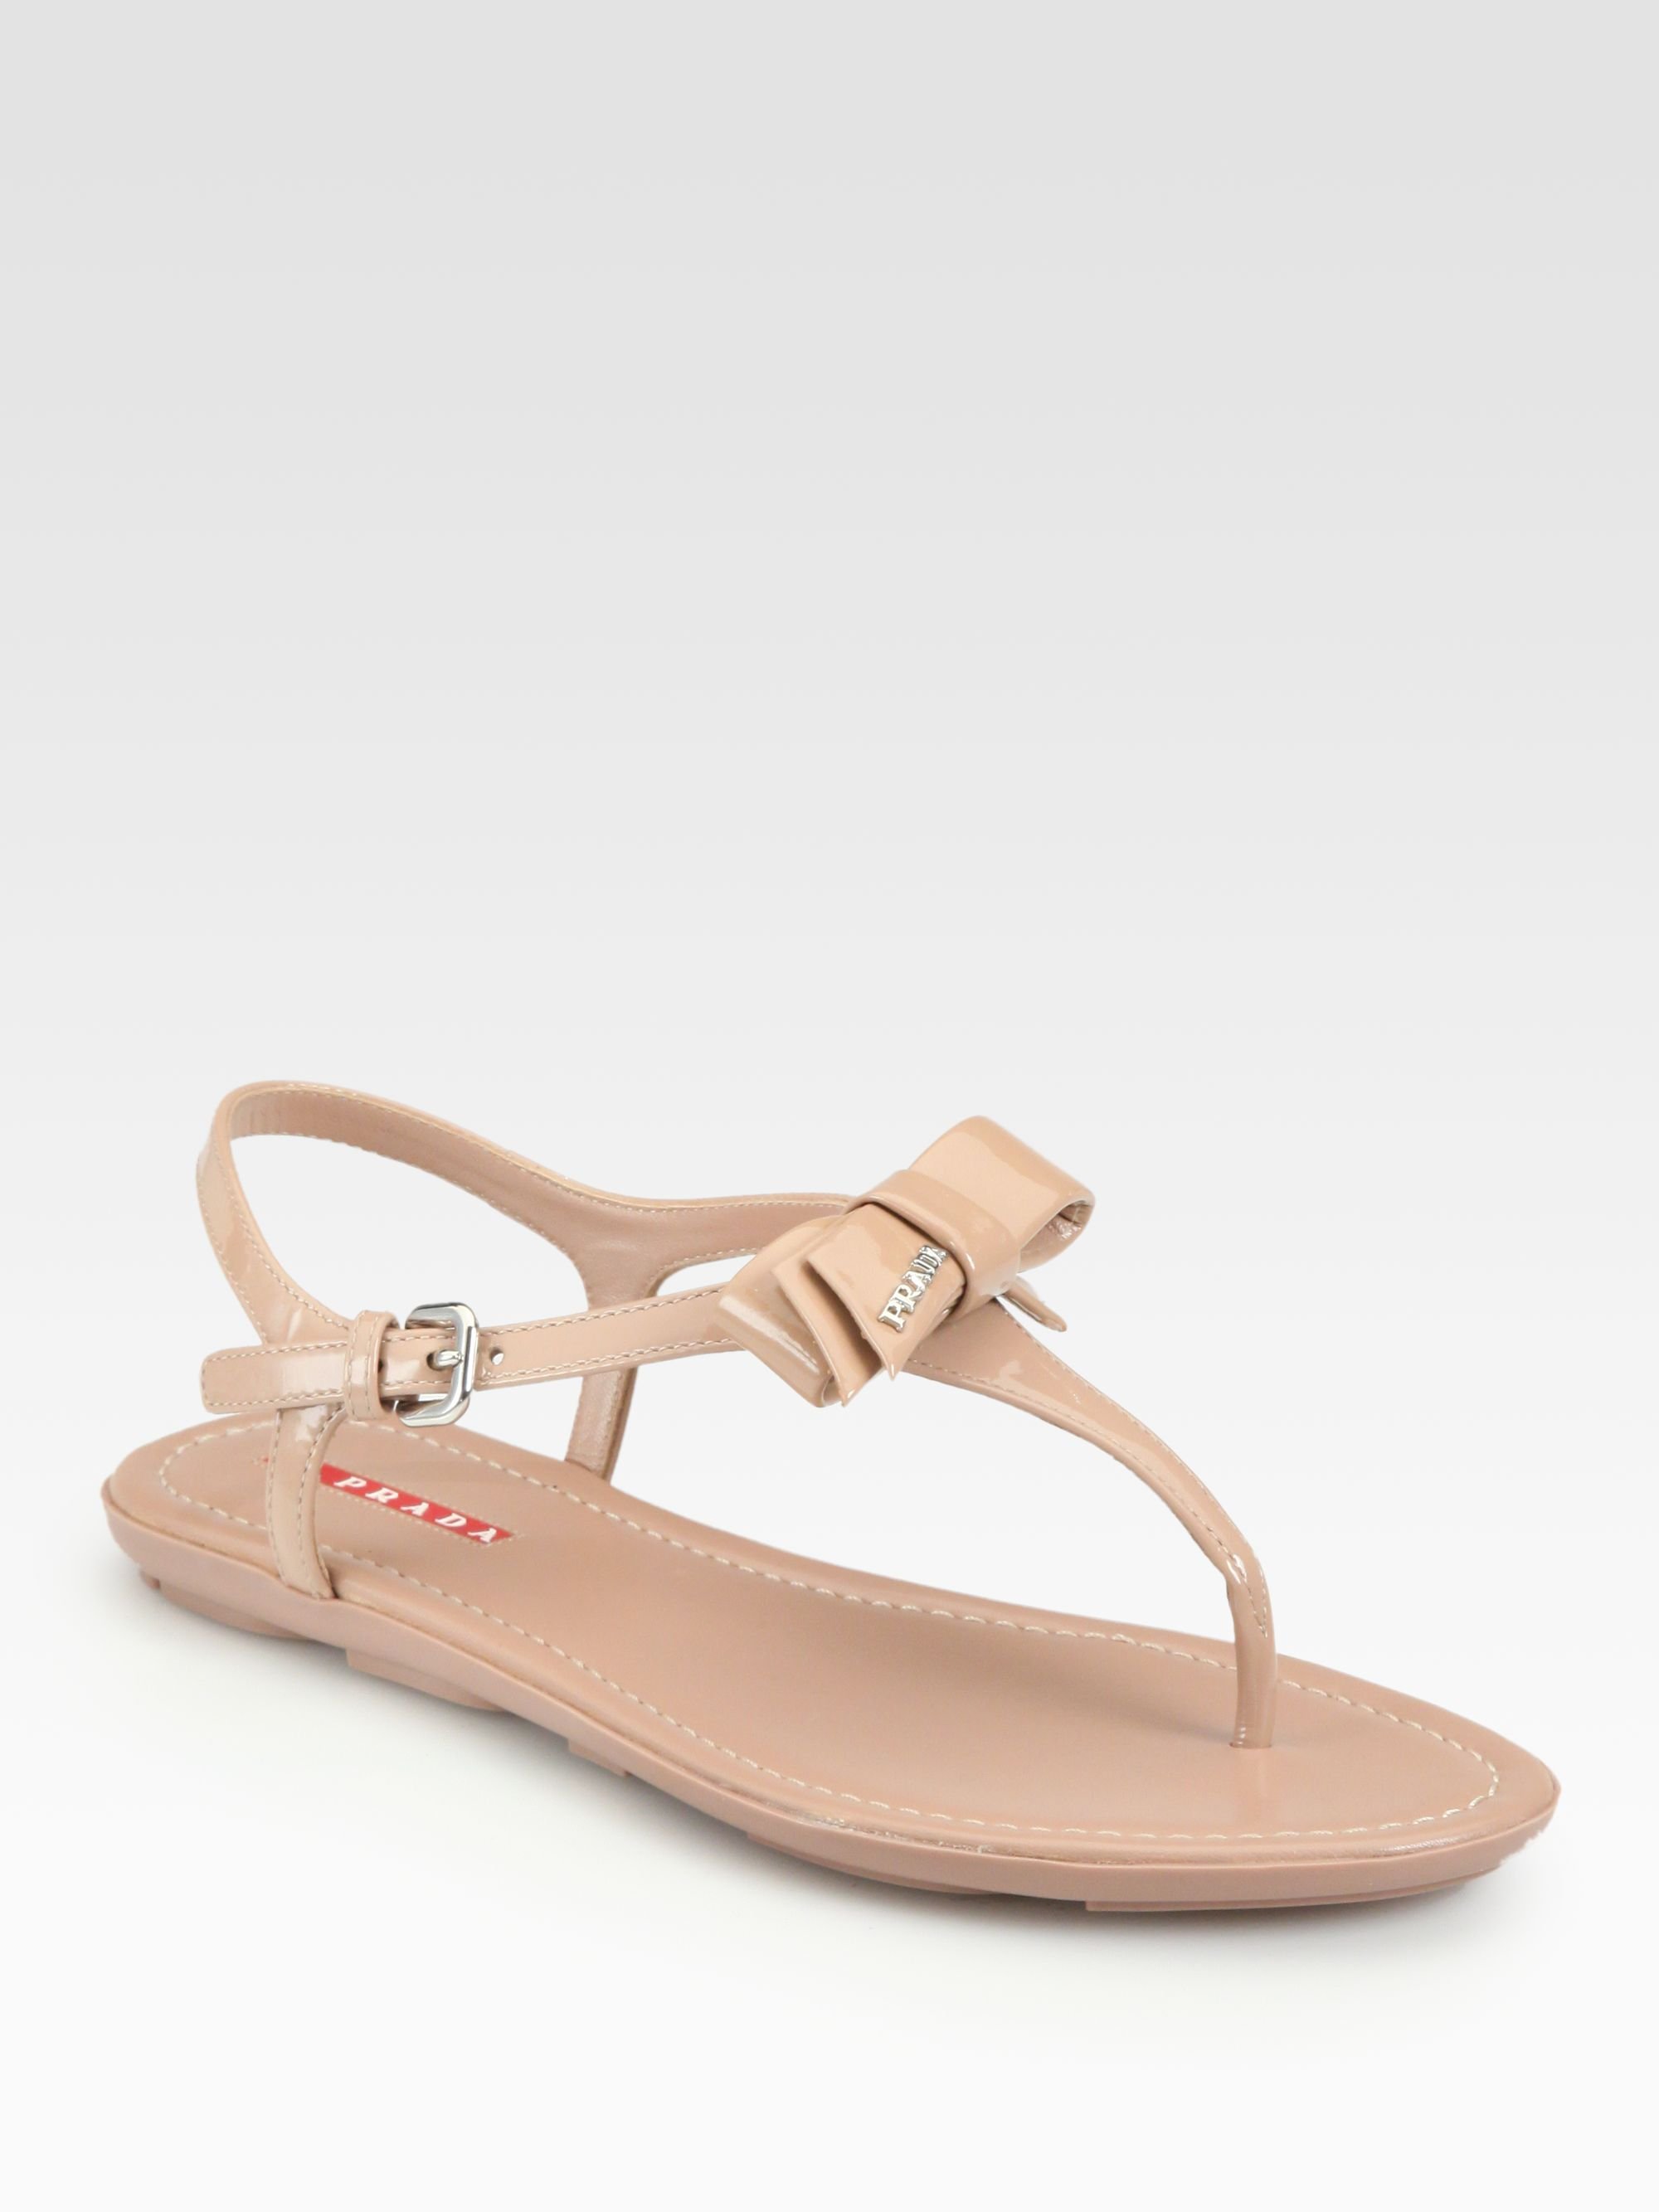 c6f6cfe27 Lyst - Prada Patent Leather Bow Thong Sandals in Natural